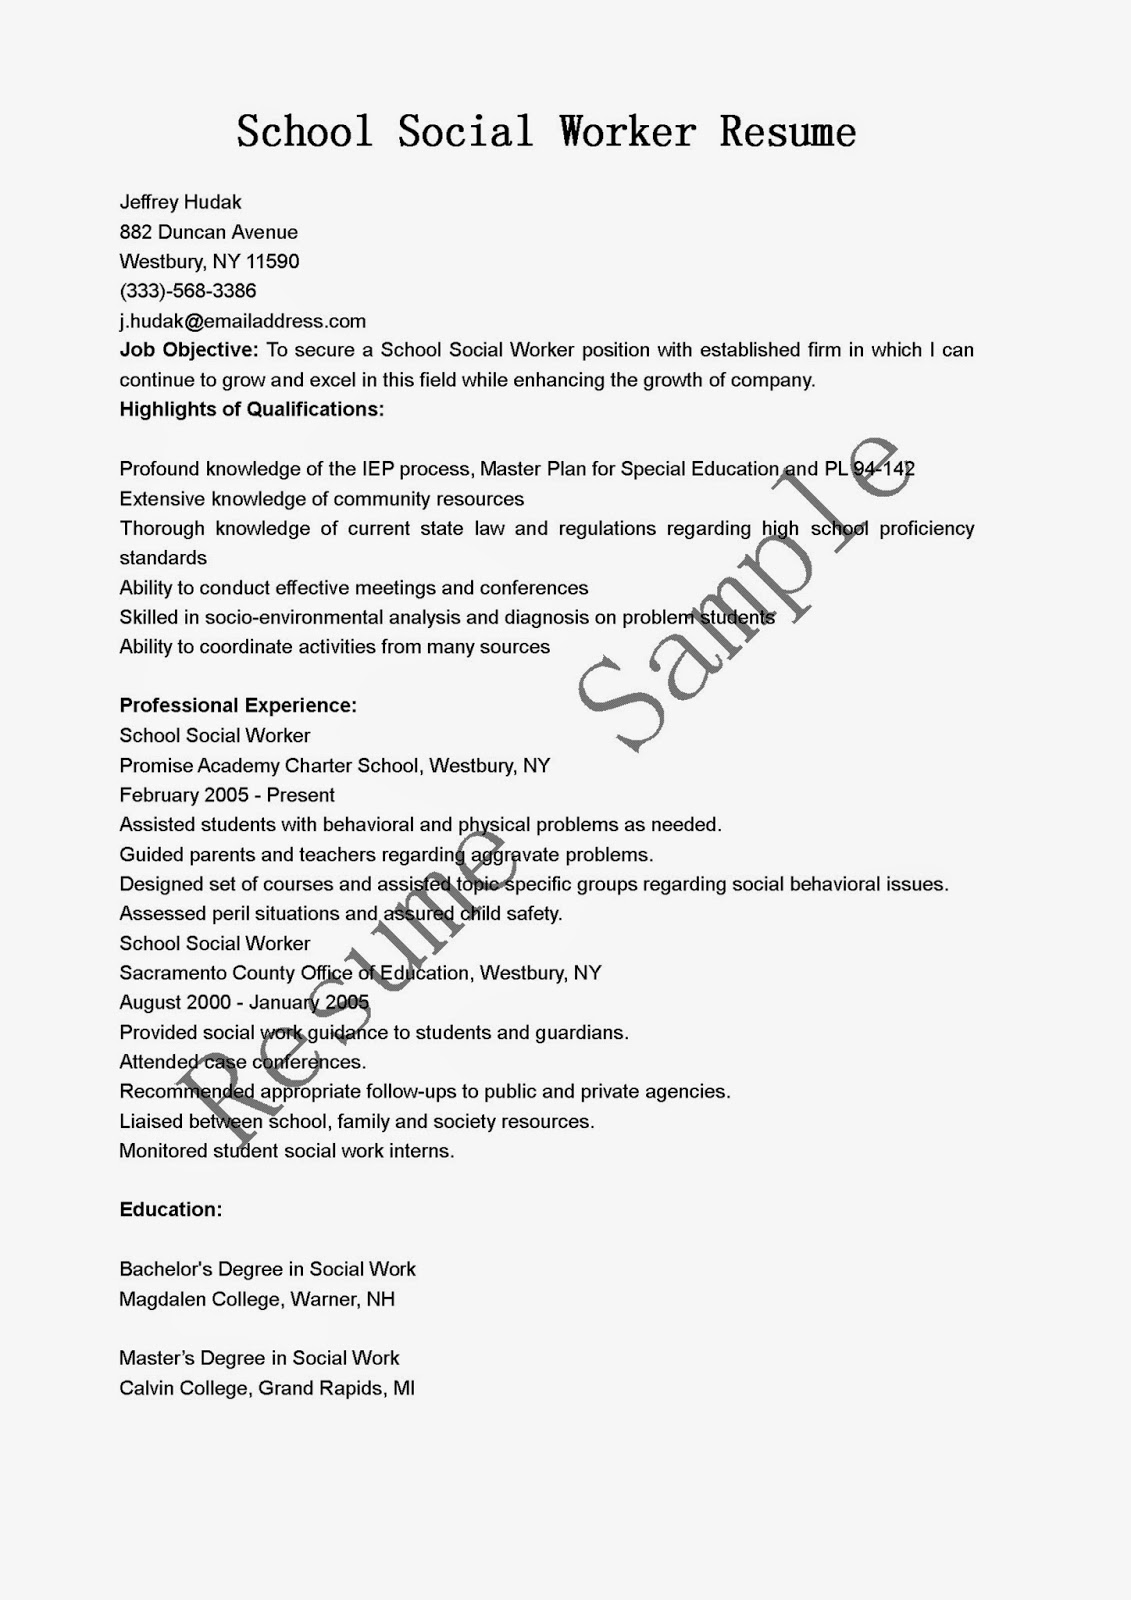 resume group home worker home the street vendor project resume school2bsocial2bworker2bresume resume group home workerhtml group home worker sample. Resume Example. Resume CV Cover Letter